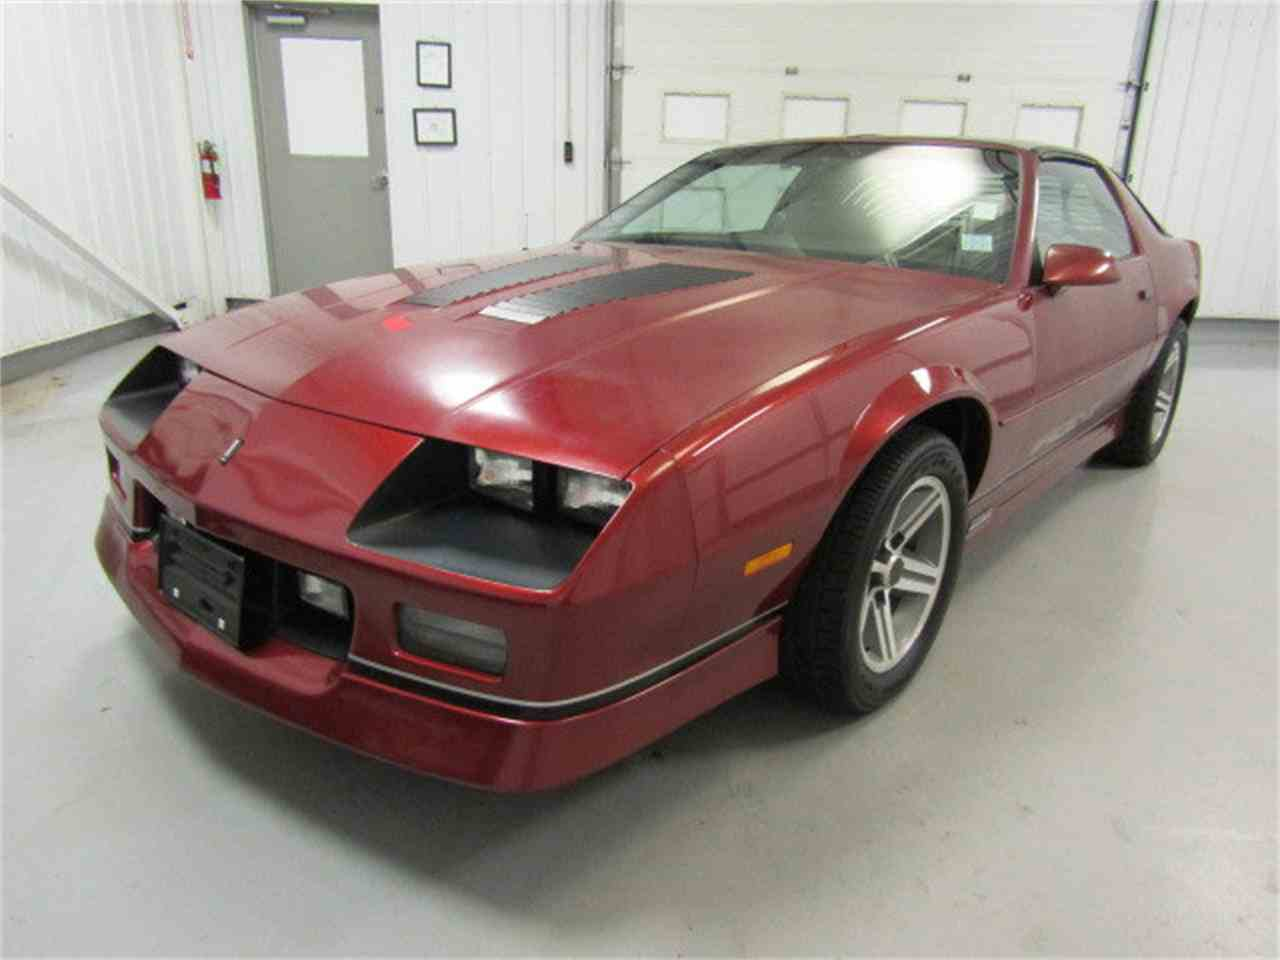 Large Picture of '86 Camaro located in Virginia - $24,900.00 Offered by Duncan Imports & Classic Cars - JLAE